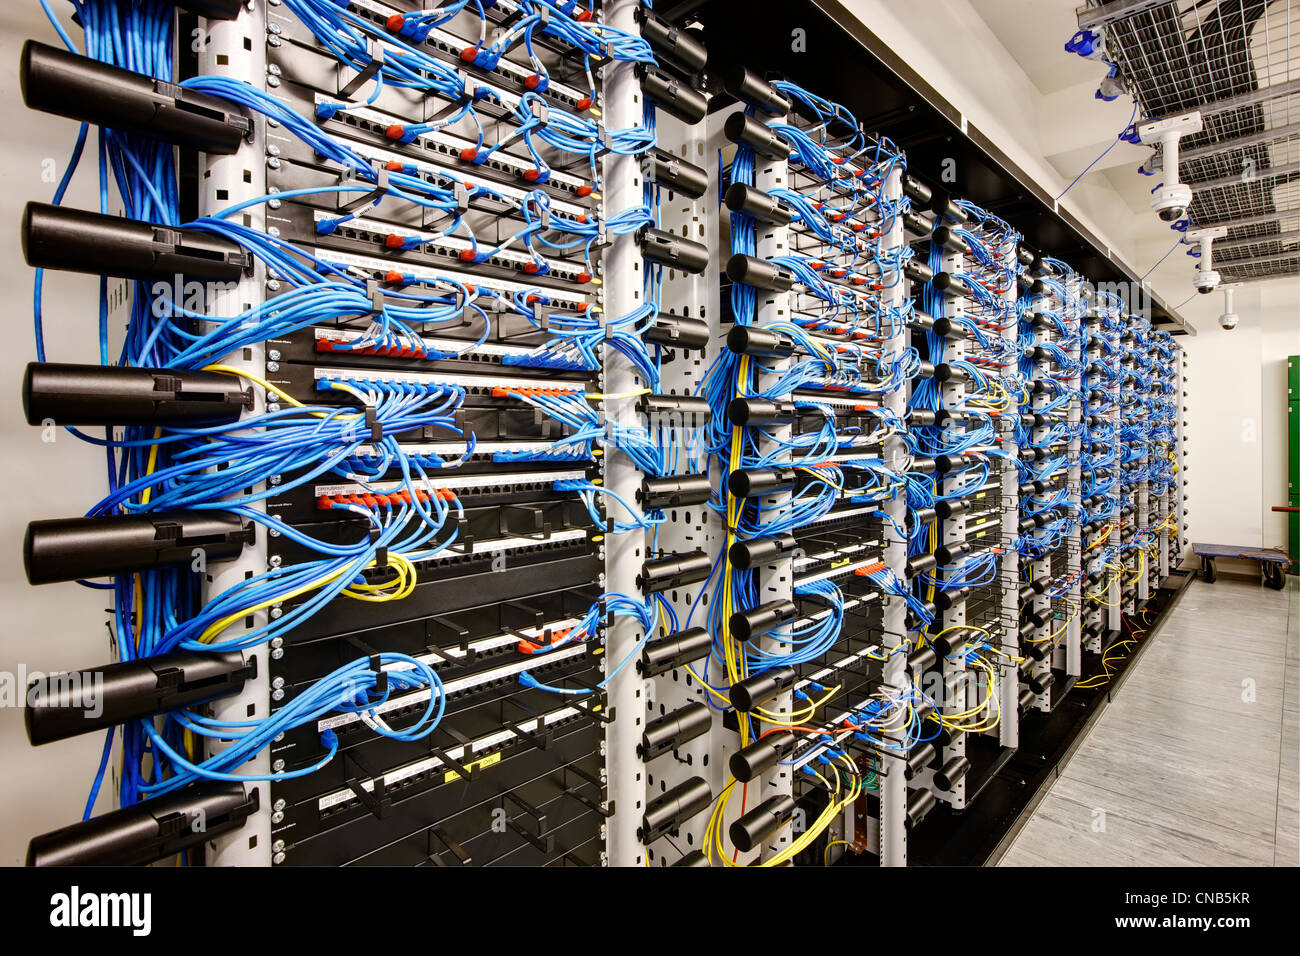 Wall Of Network Cabling Blue Bank Computer Room Stock